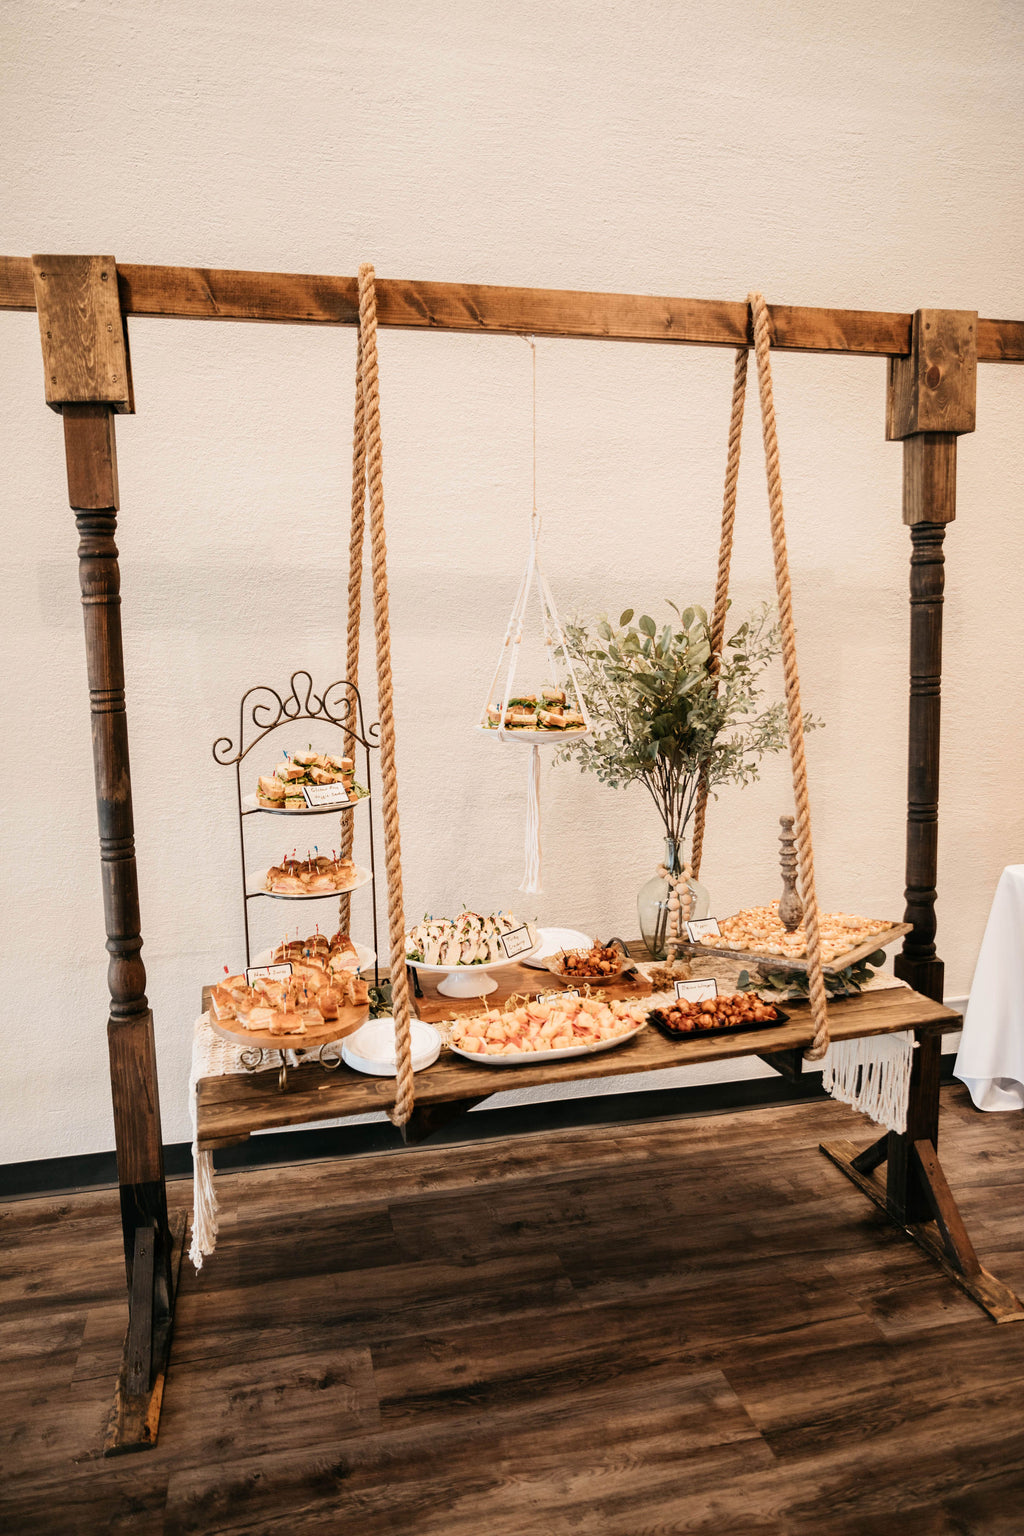 Hanging table/arch